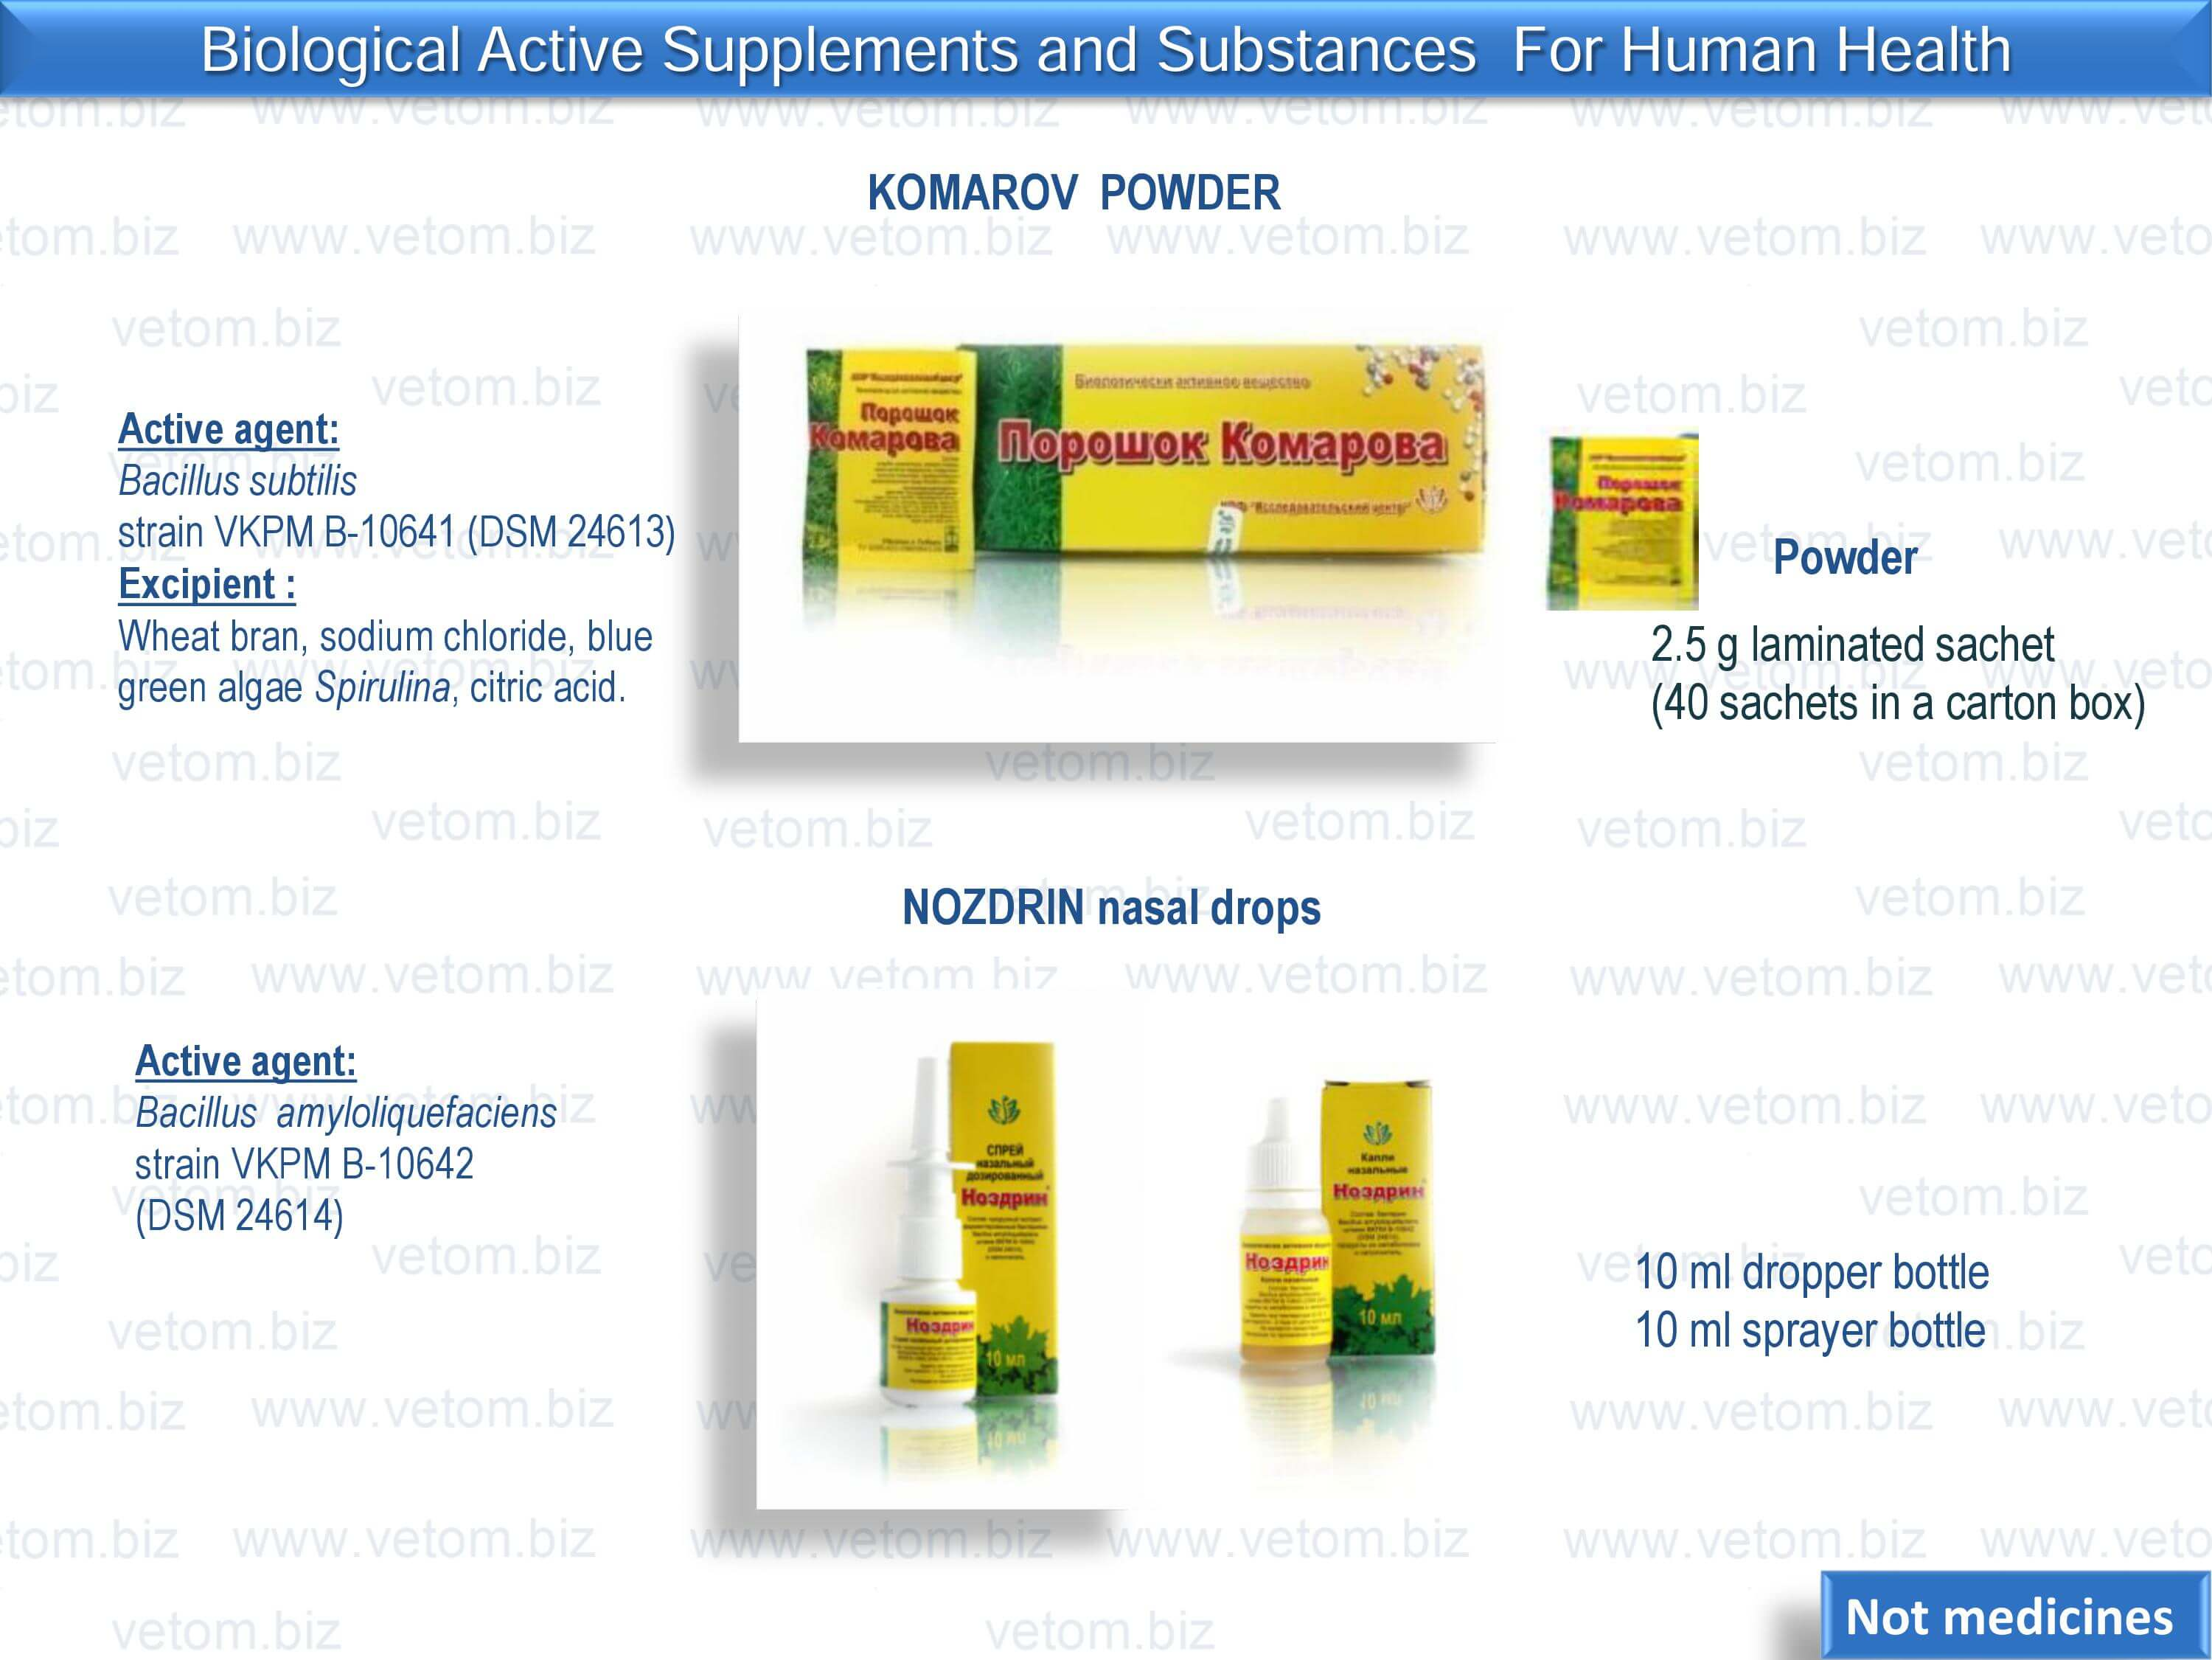 Biologically active supplements and substances for human health - Komarov powder, Nozdrin nasal drops